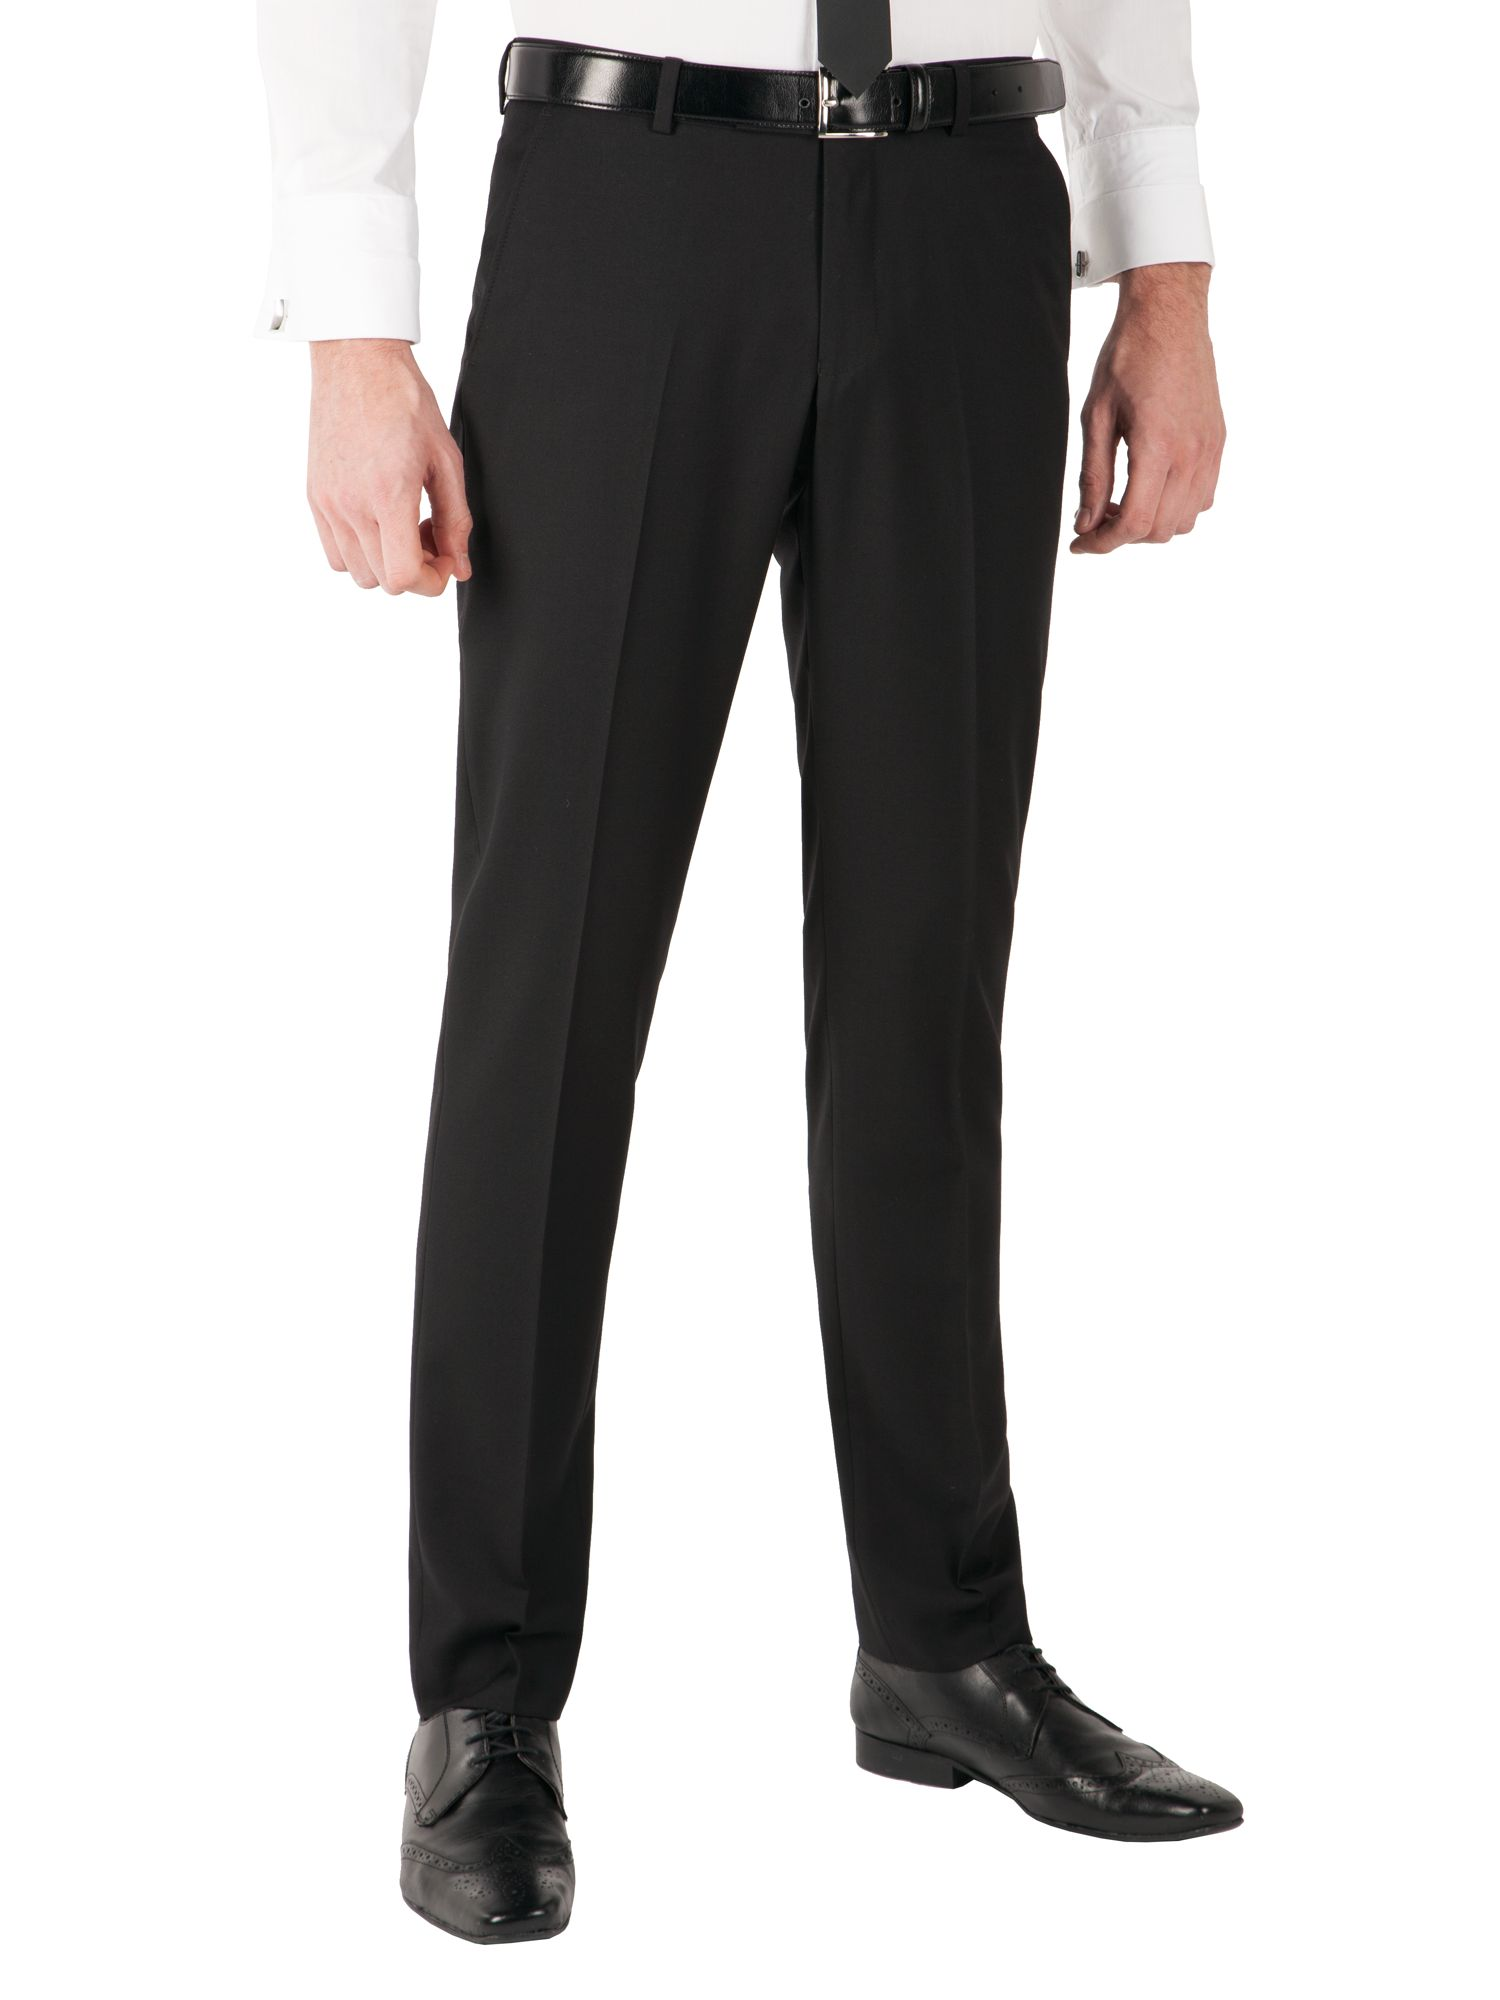 Satin dresswear trousers